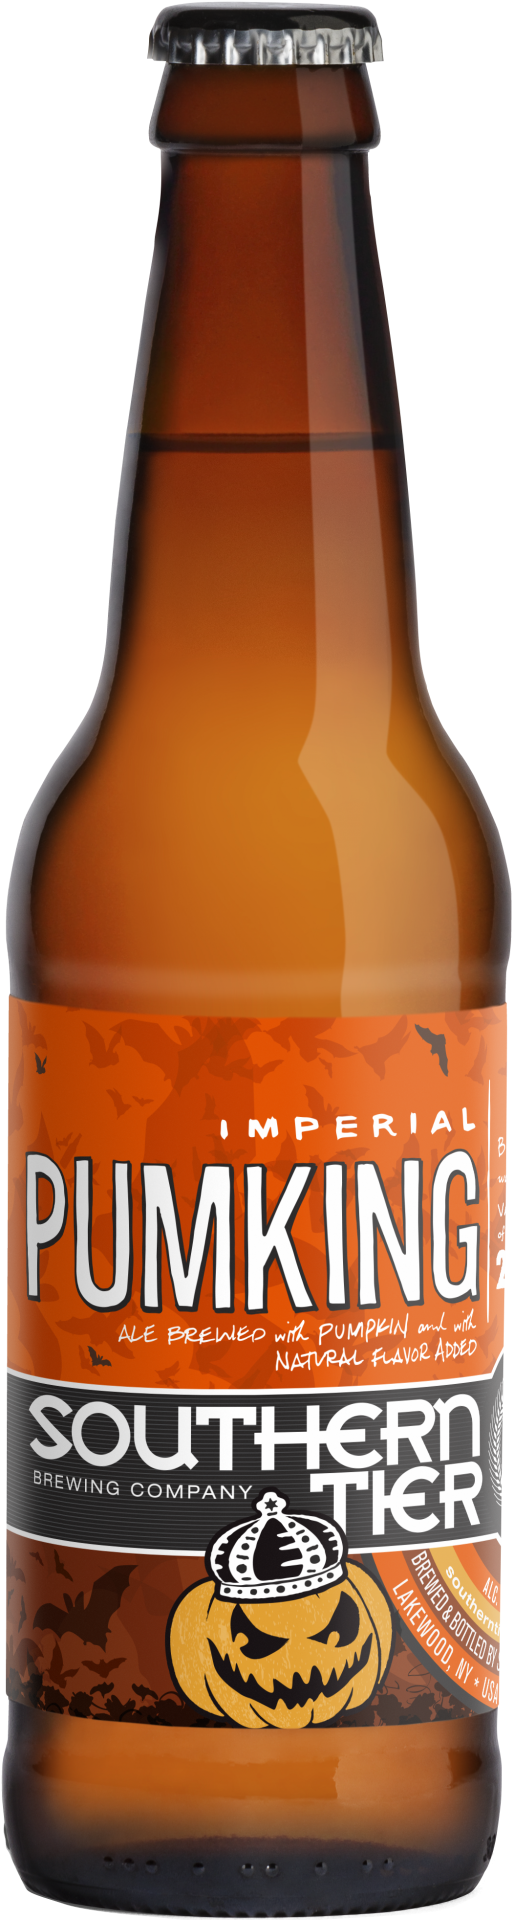 5. Southern Tier Pumking